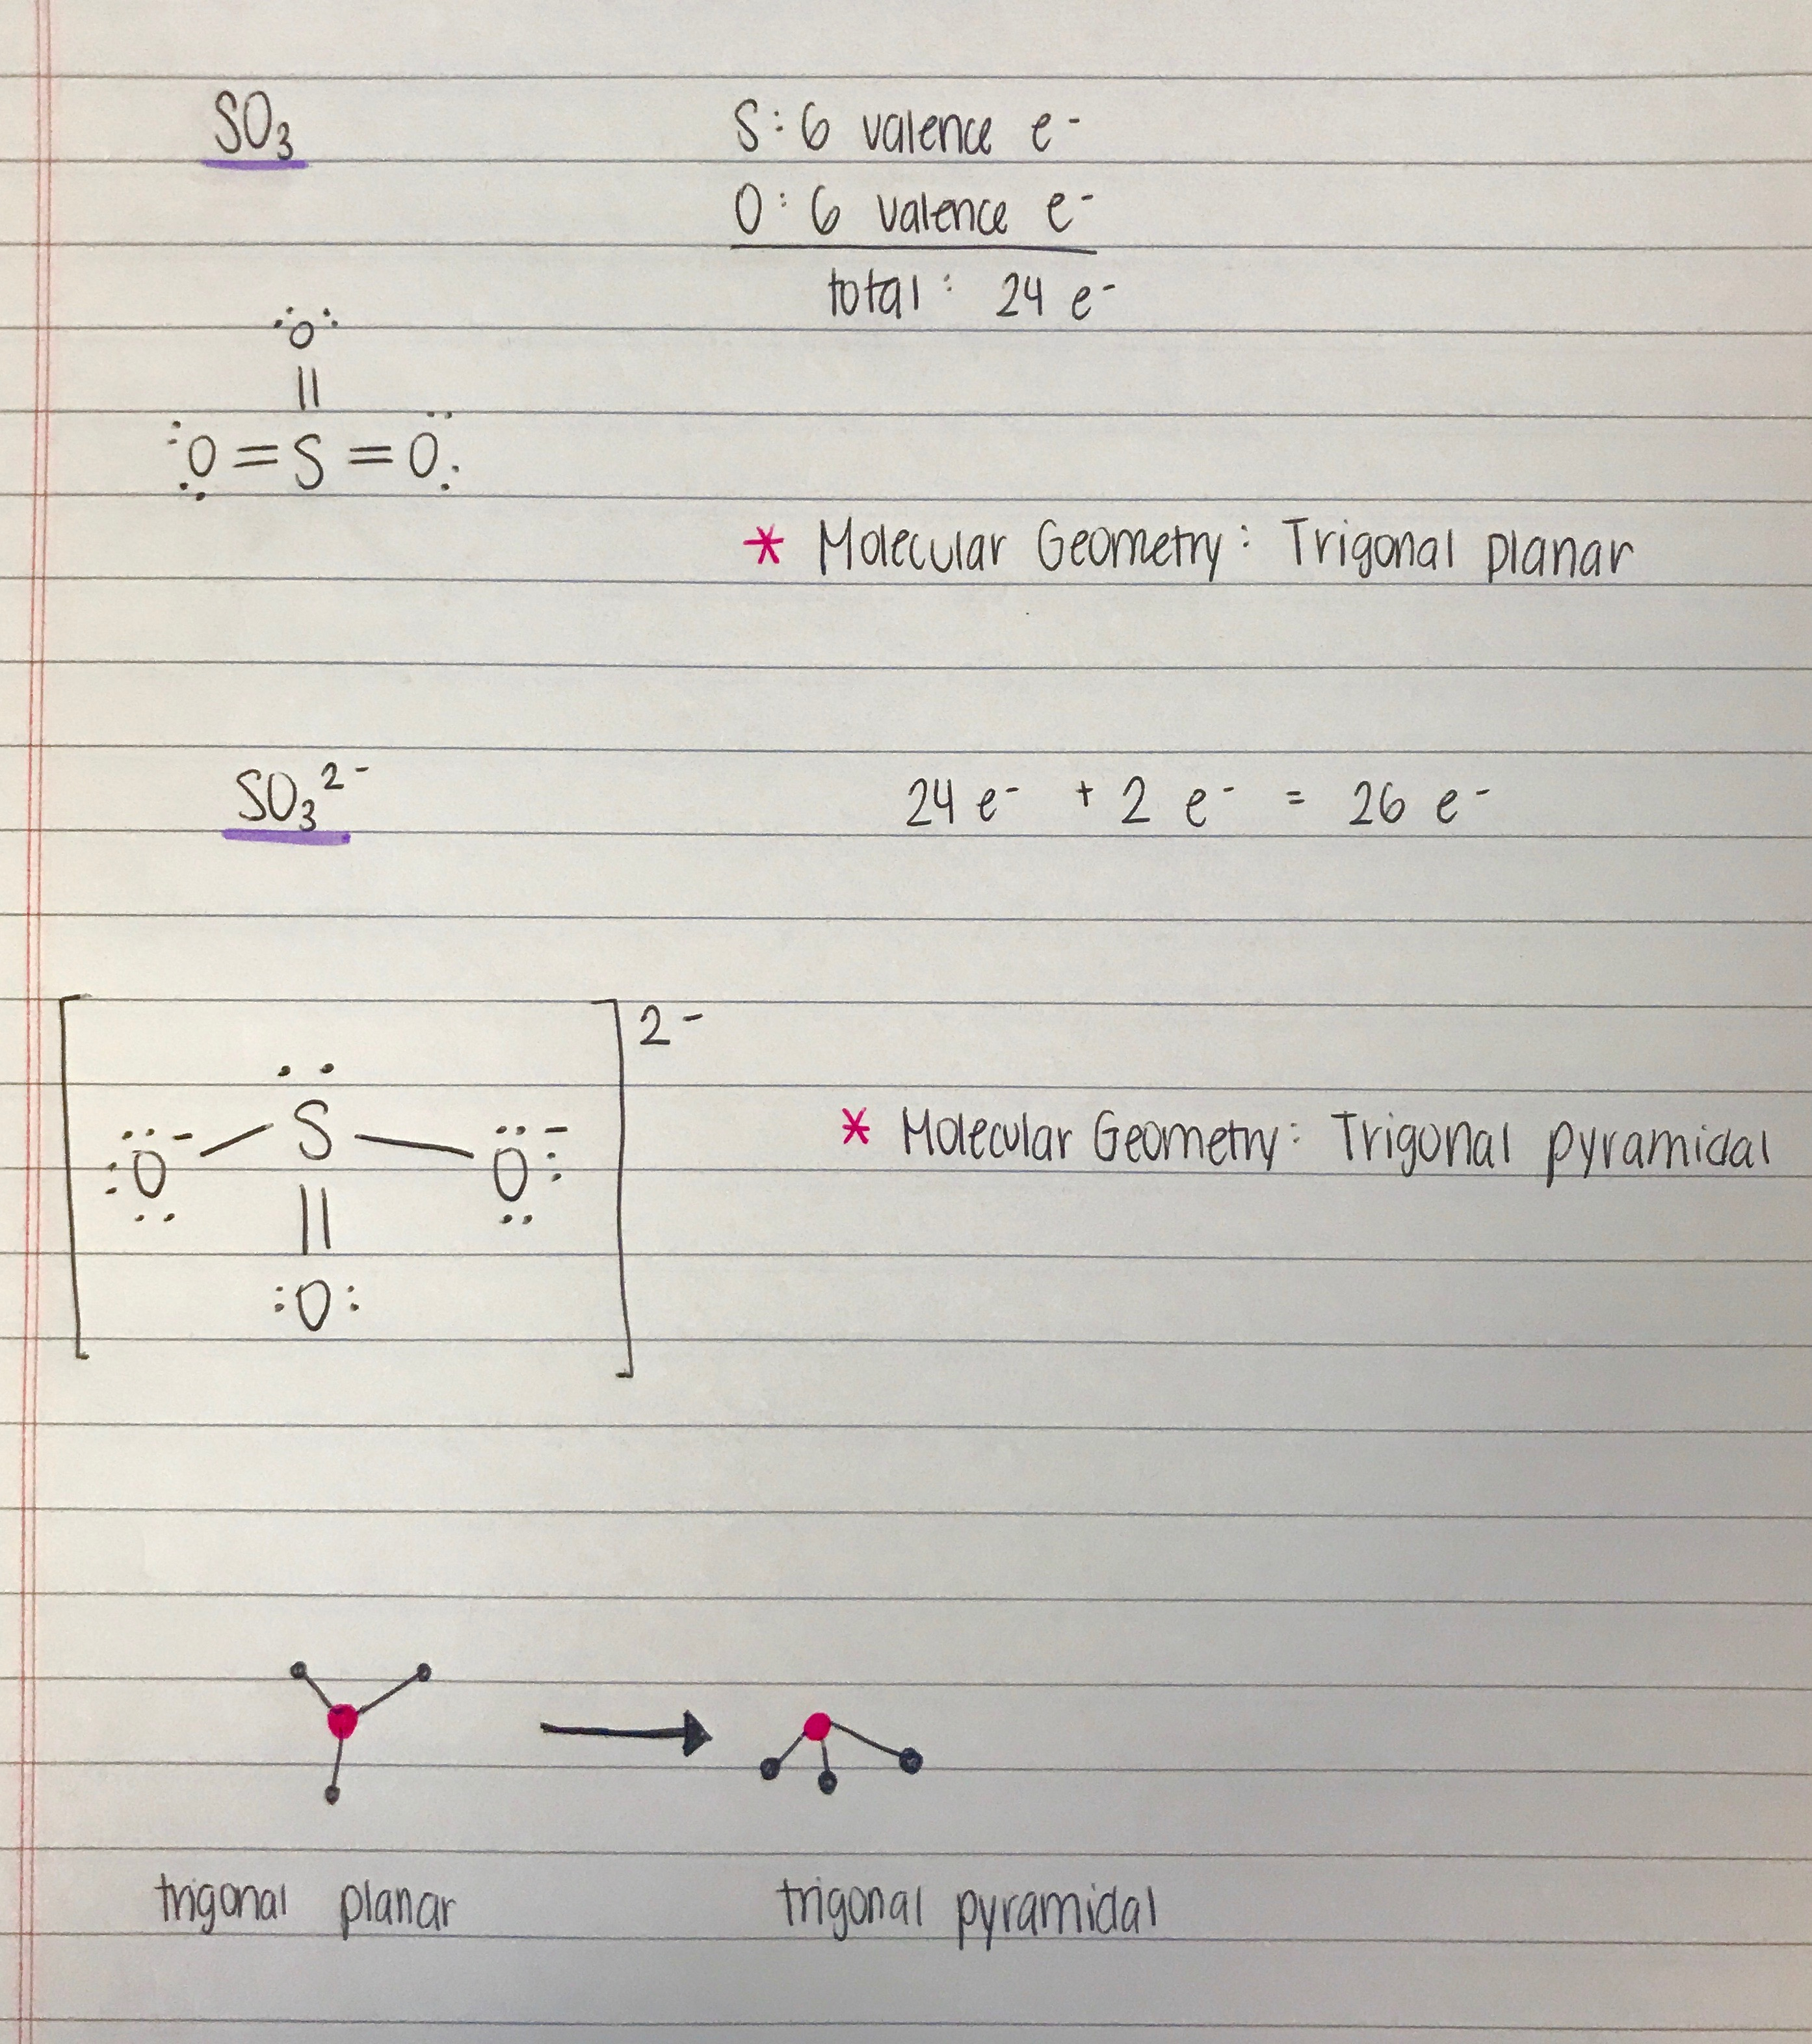 Draw The Lewis Dot Structure For So3 2